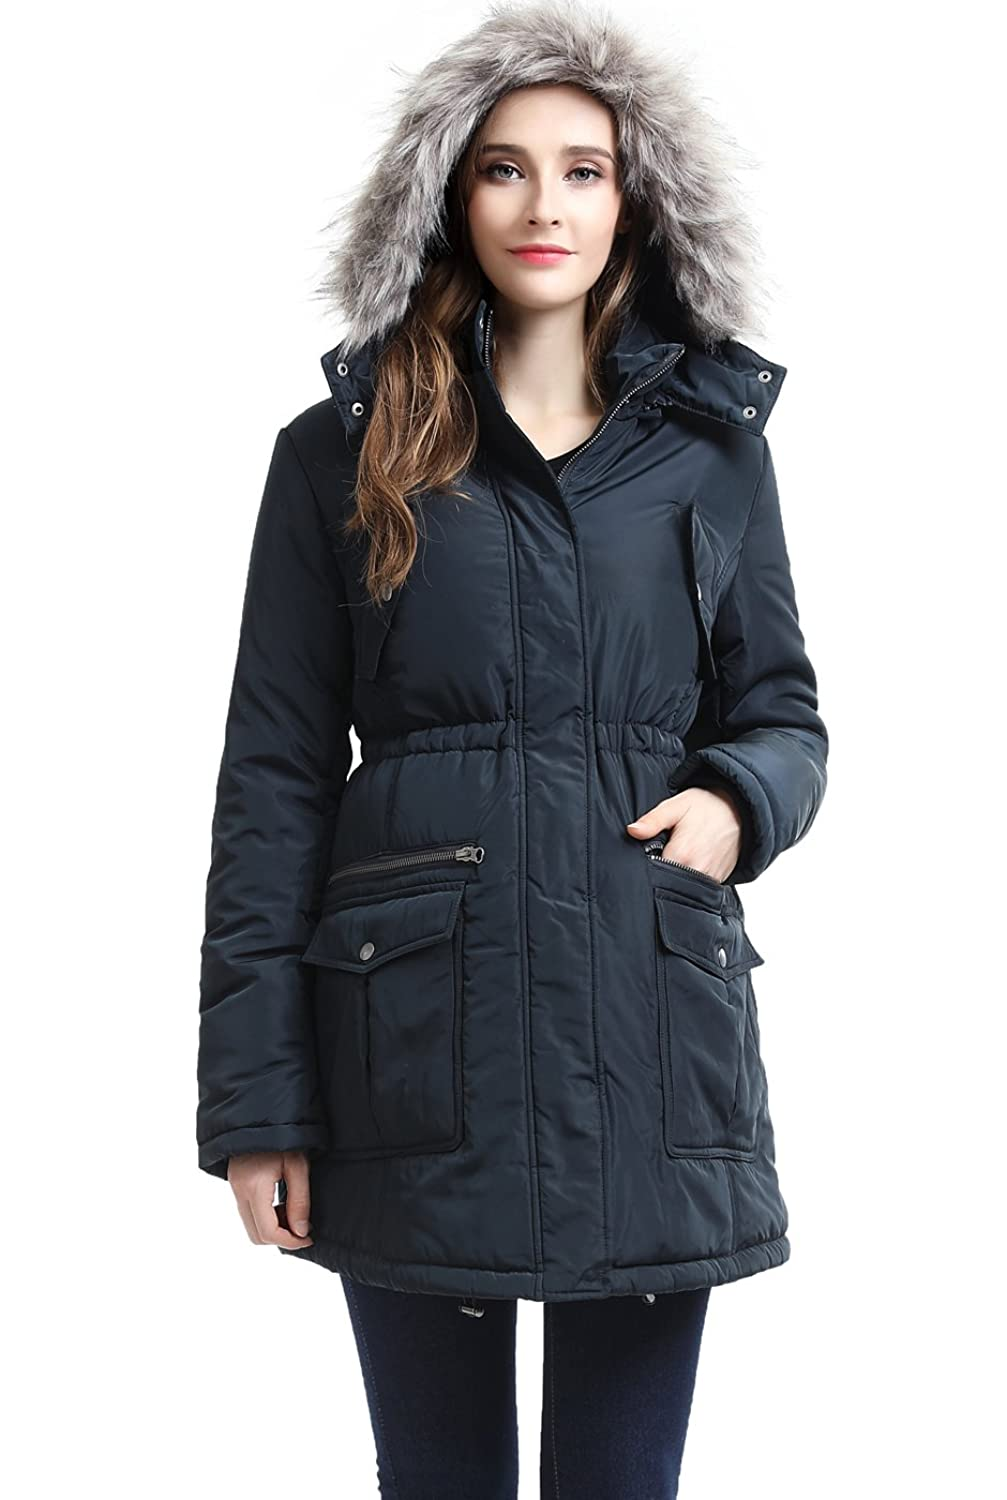 Maternity outerwear amazon product details ombrellifo Choice Image